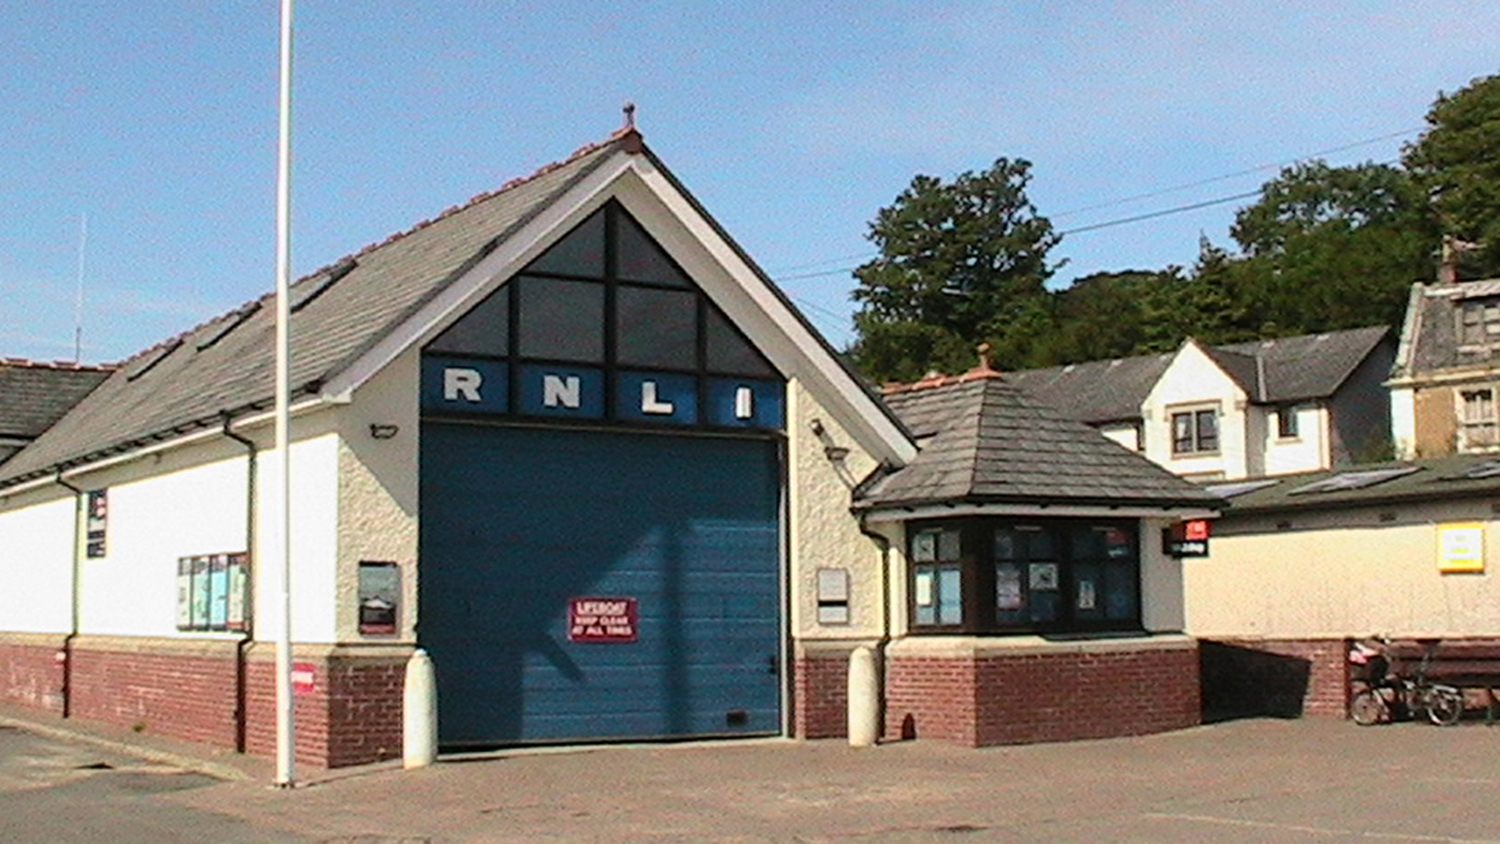 RNLI Arran Lifeboat Station